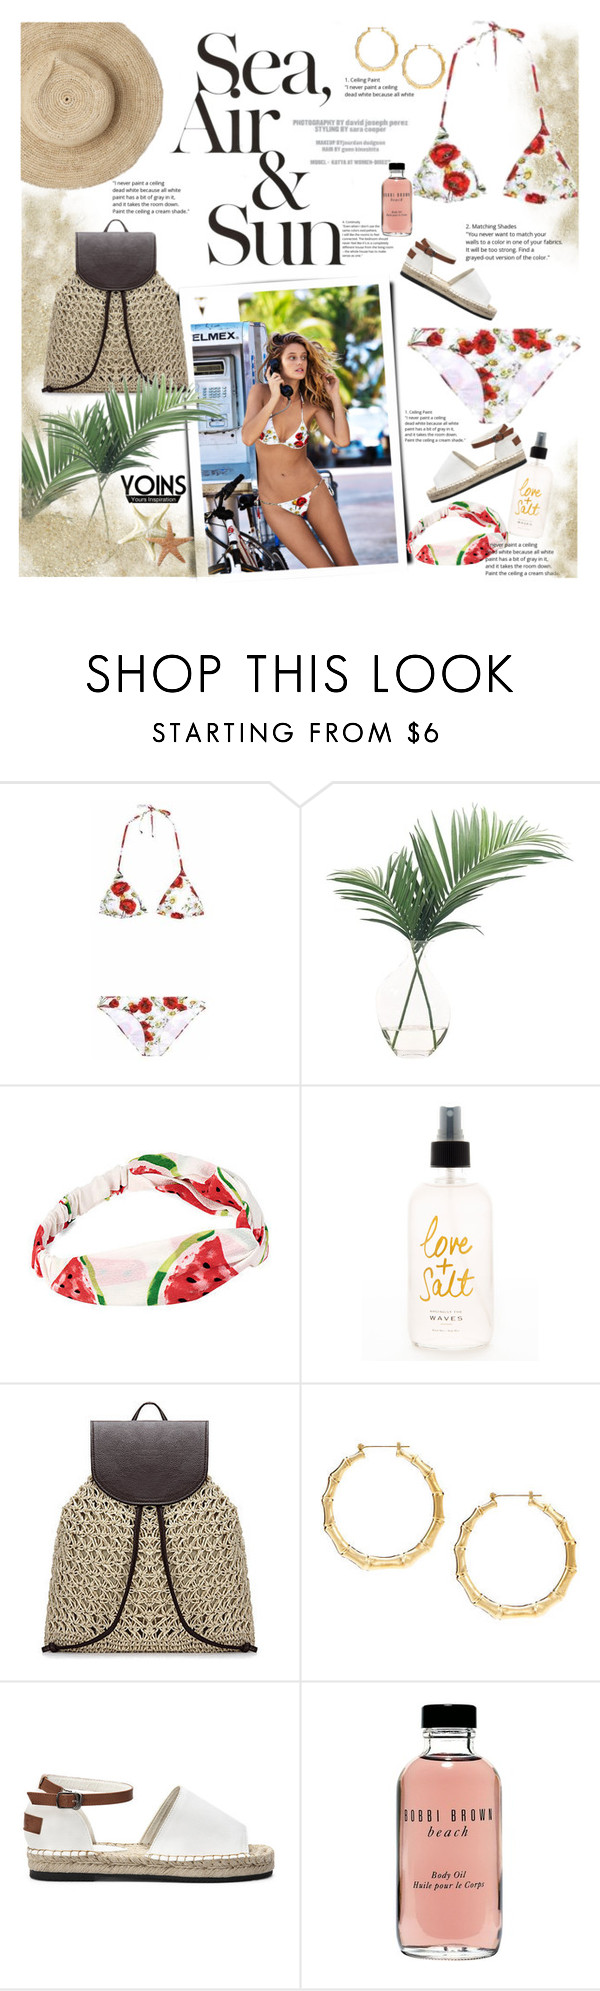 """""""Summer with Yoins"""" by naki14 ❤ liked on Polyvore featuring Dolce&Gabbana, NDI, Valentino, Oysho, Bobbi Brown Cosmetics, yoins, yoinscollection and loveyoins"""